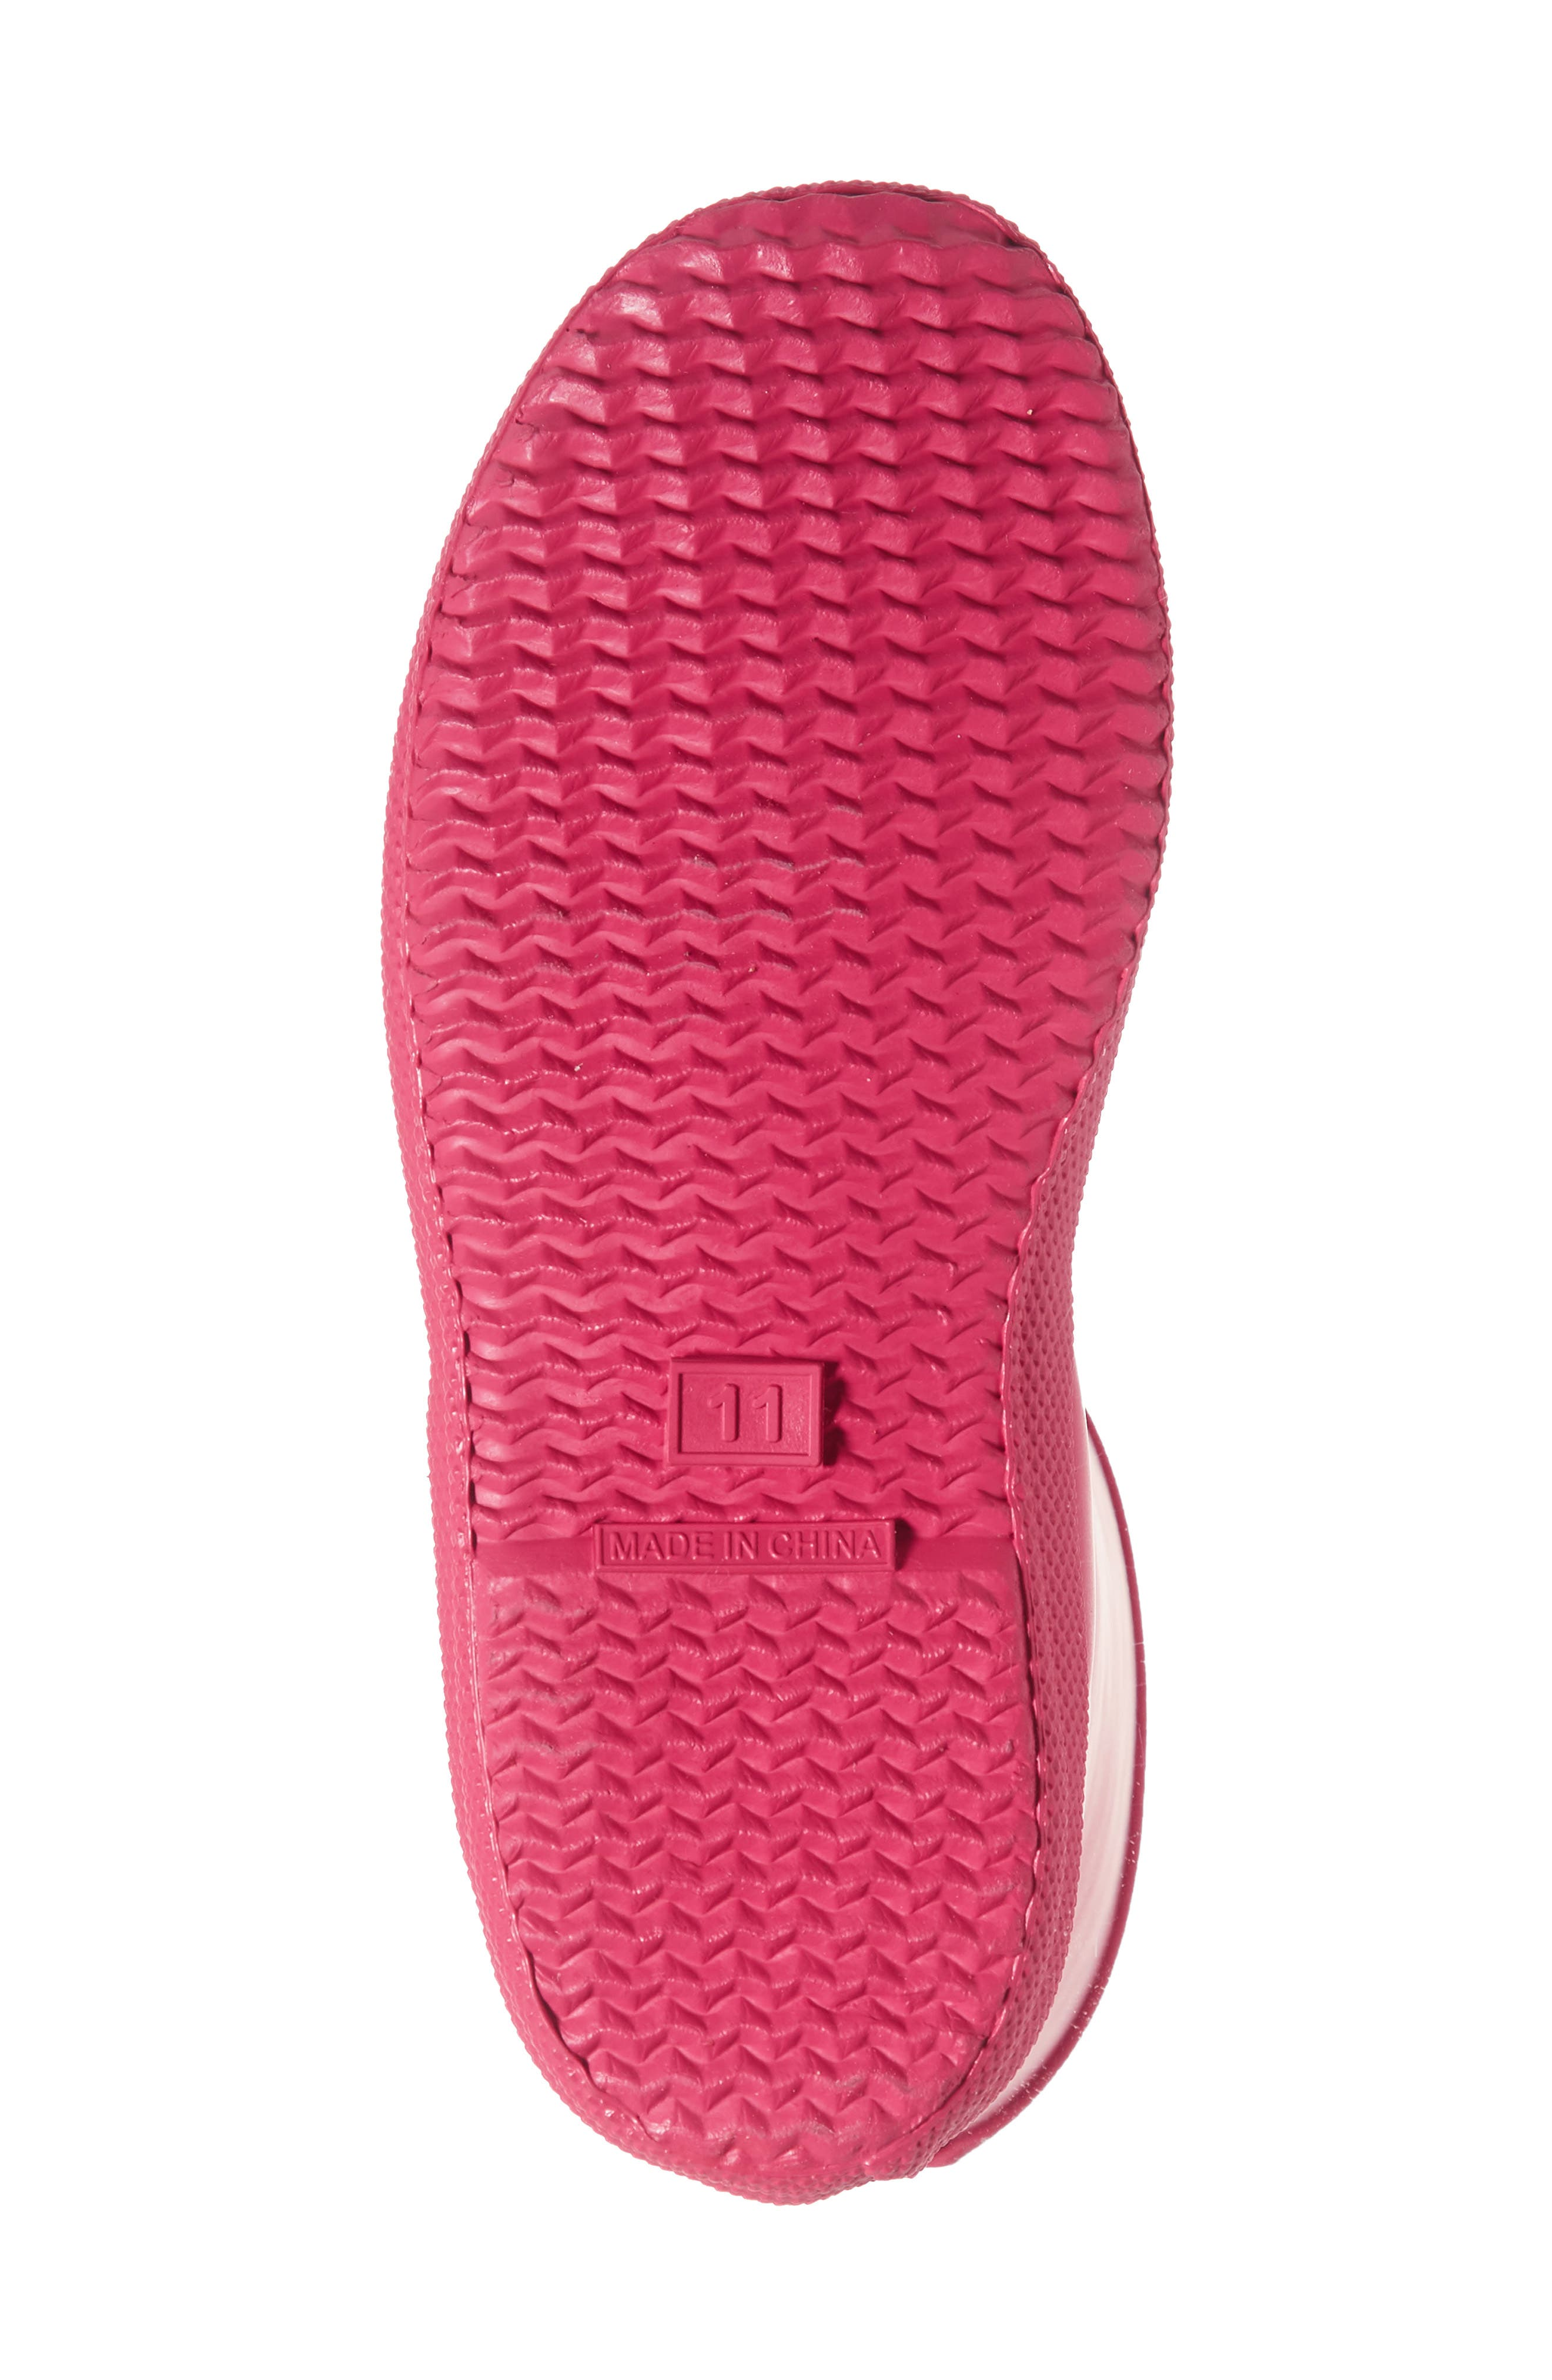 'First Classic' Rain Boot,                             Alternate thumbnail 5, color,                             Bright Pink